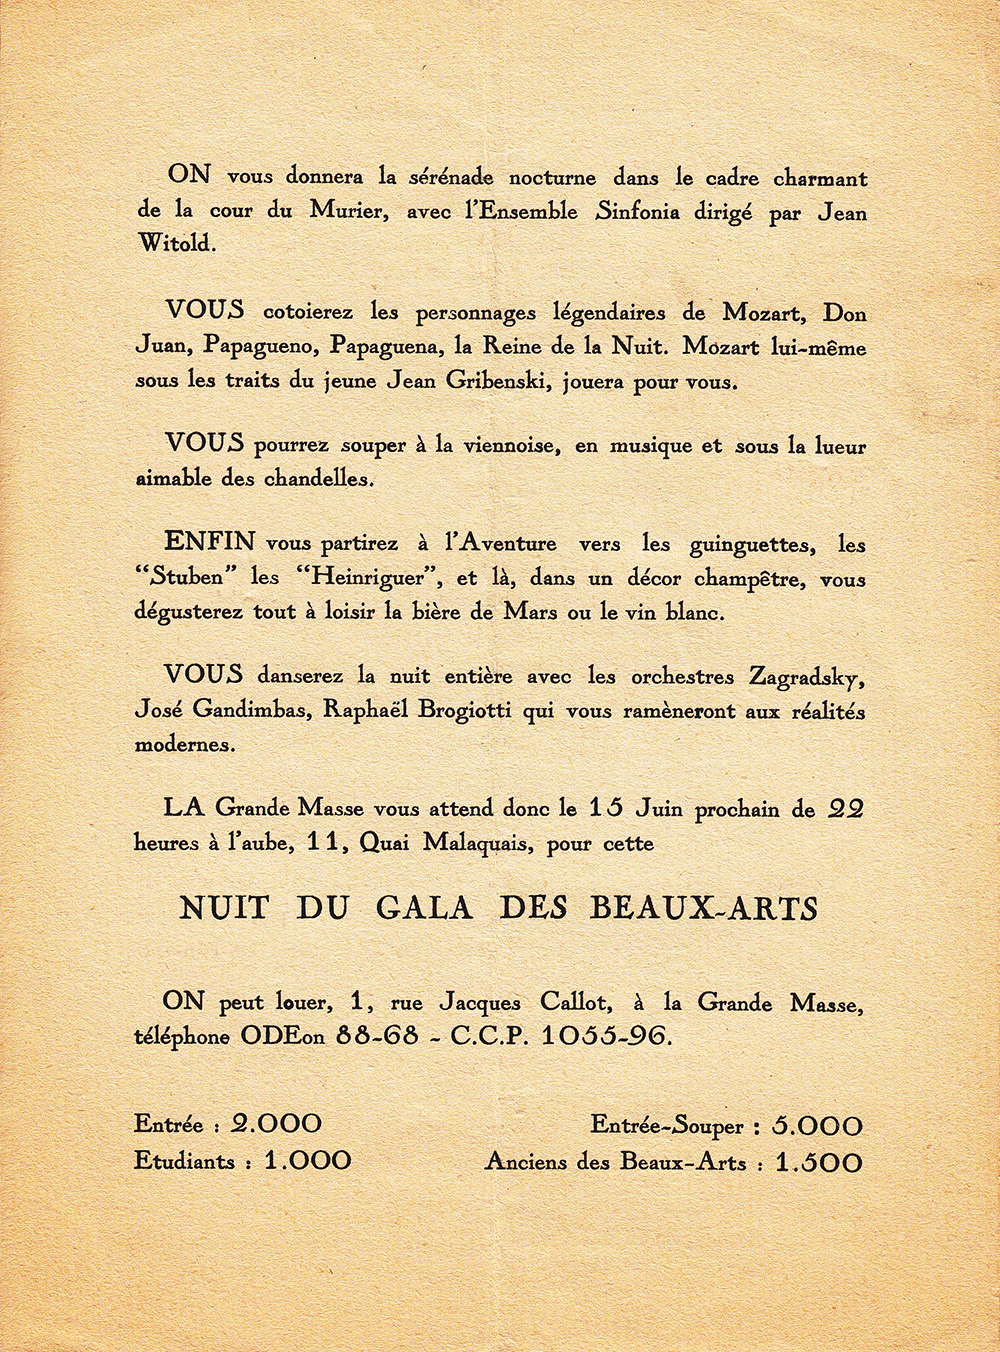 1956_CARTON_Annonce-Bal_Page-2.jpg